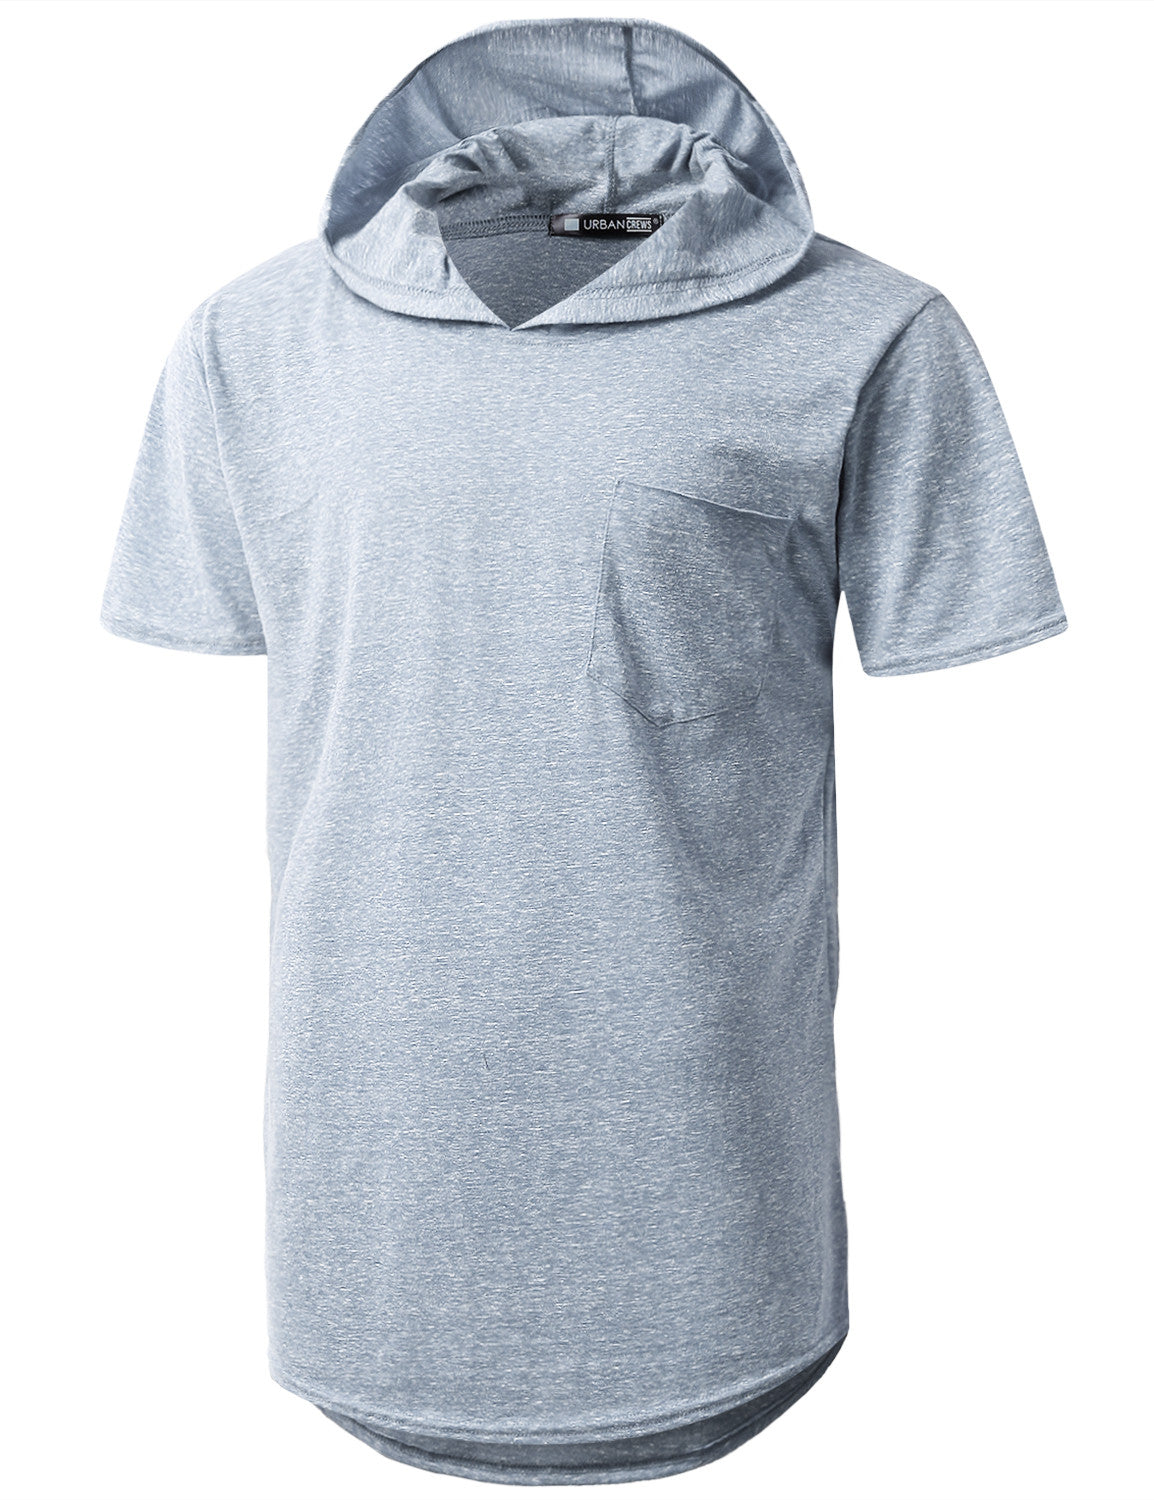 LTBLUE Melange Pocket Short Sleeve Hoodie - URBANCREWS